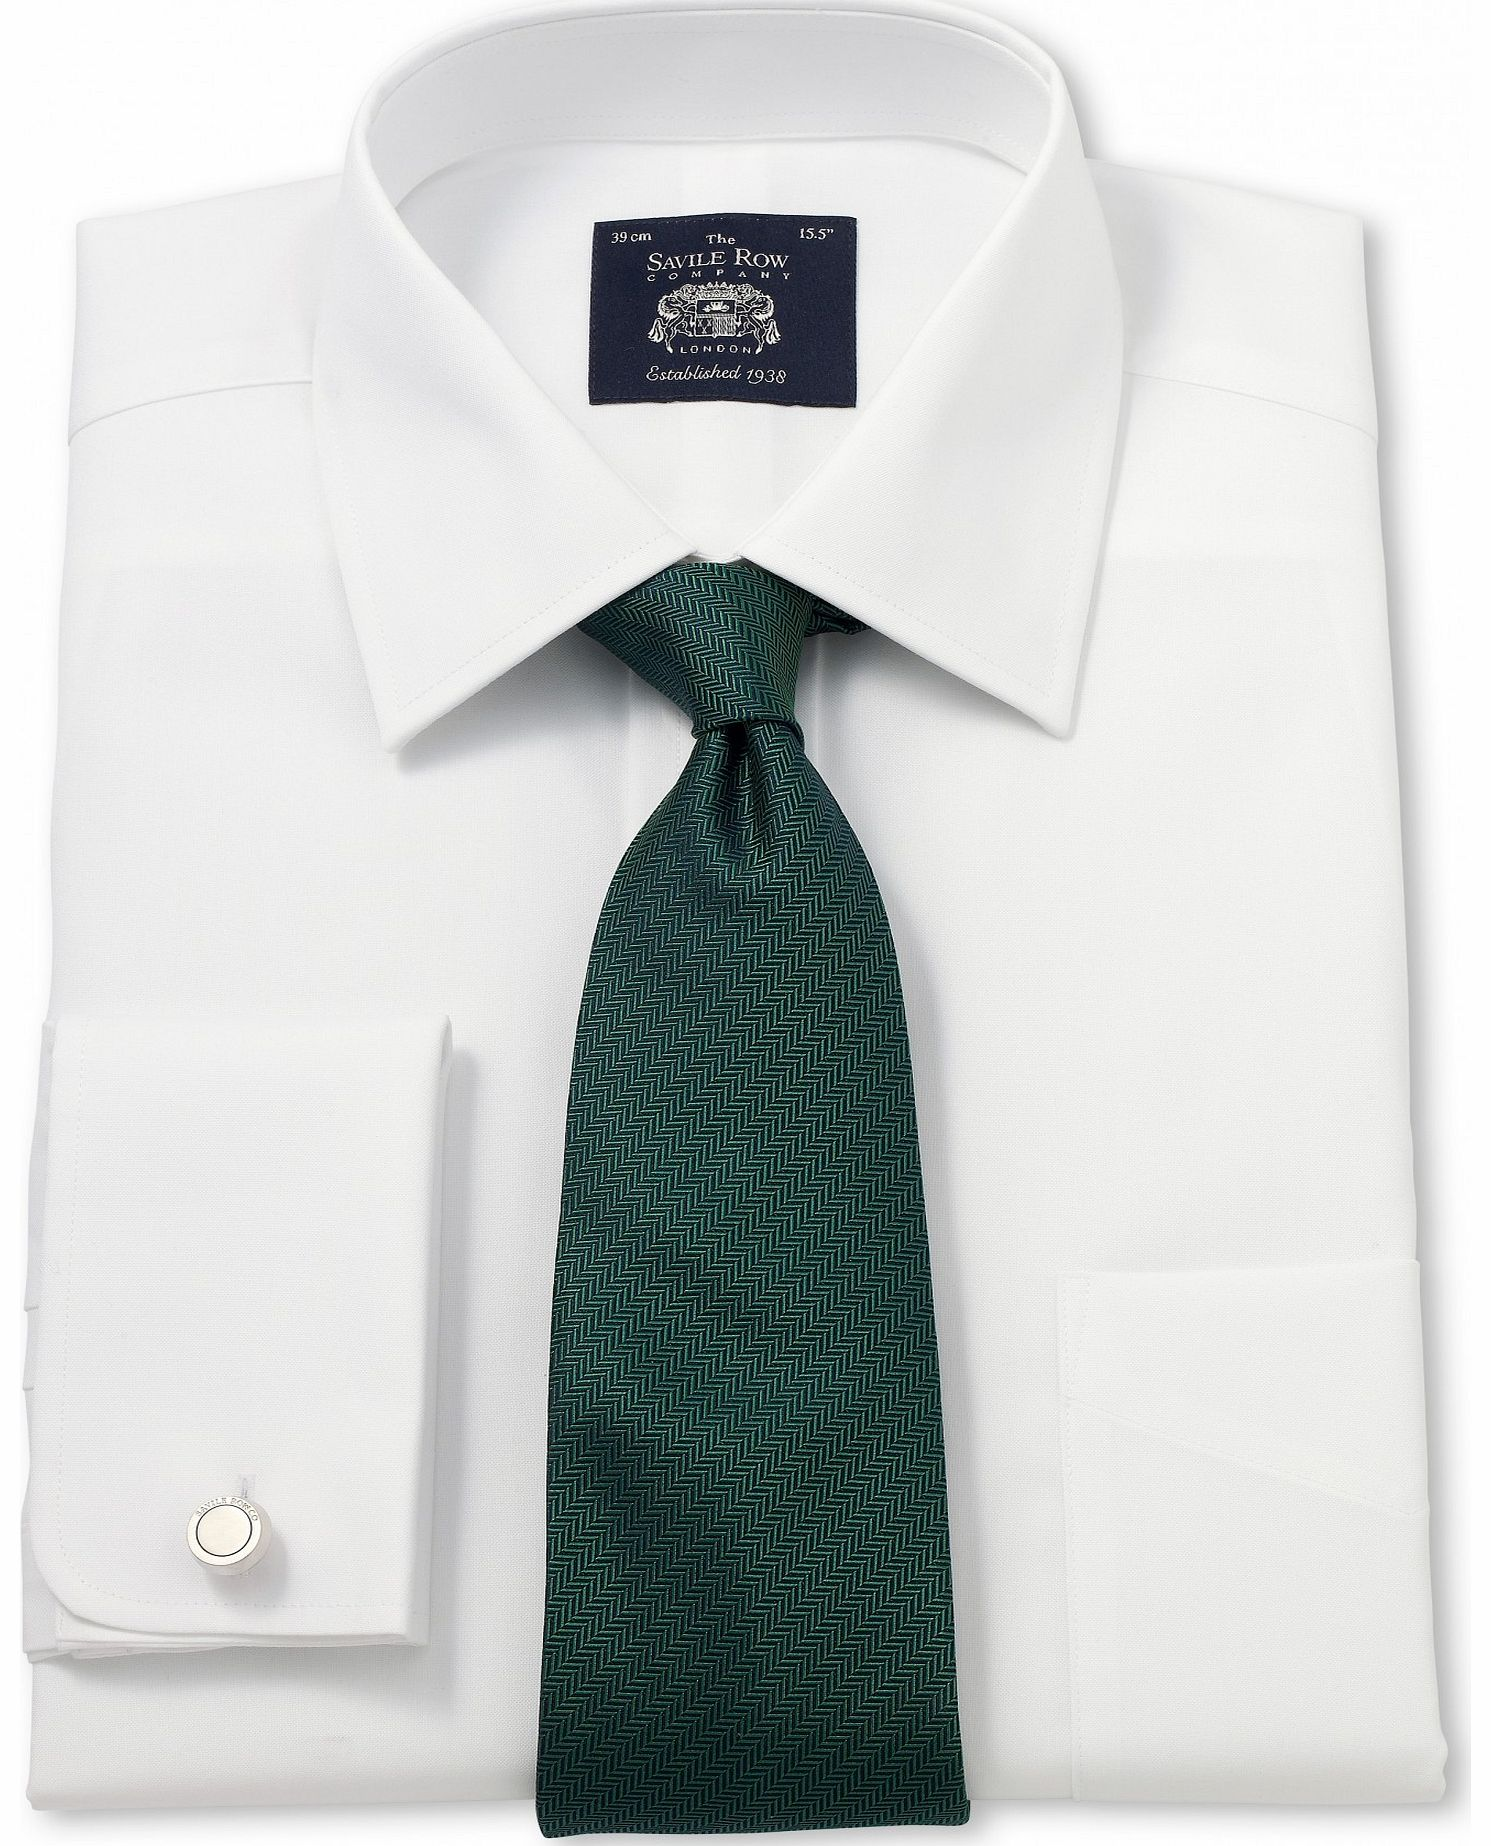 Savile Row Company White Non-Iron Classic Fit Shirt 16`` Standard & product image